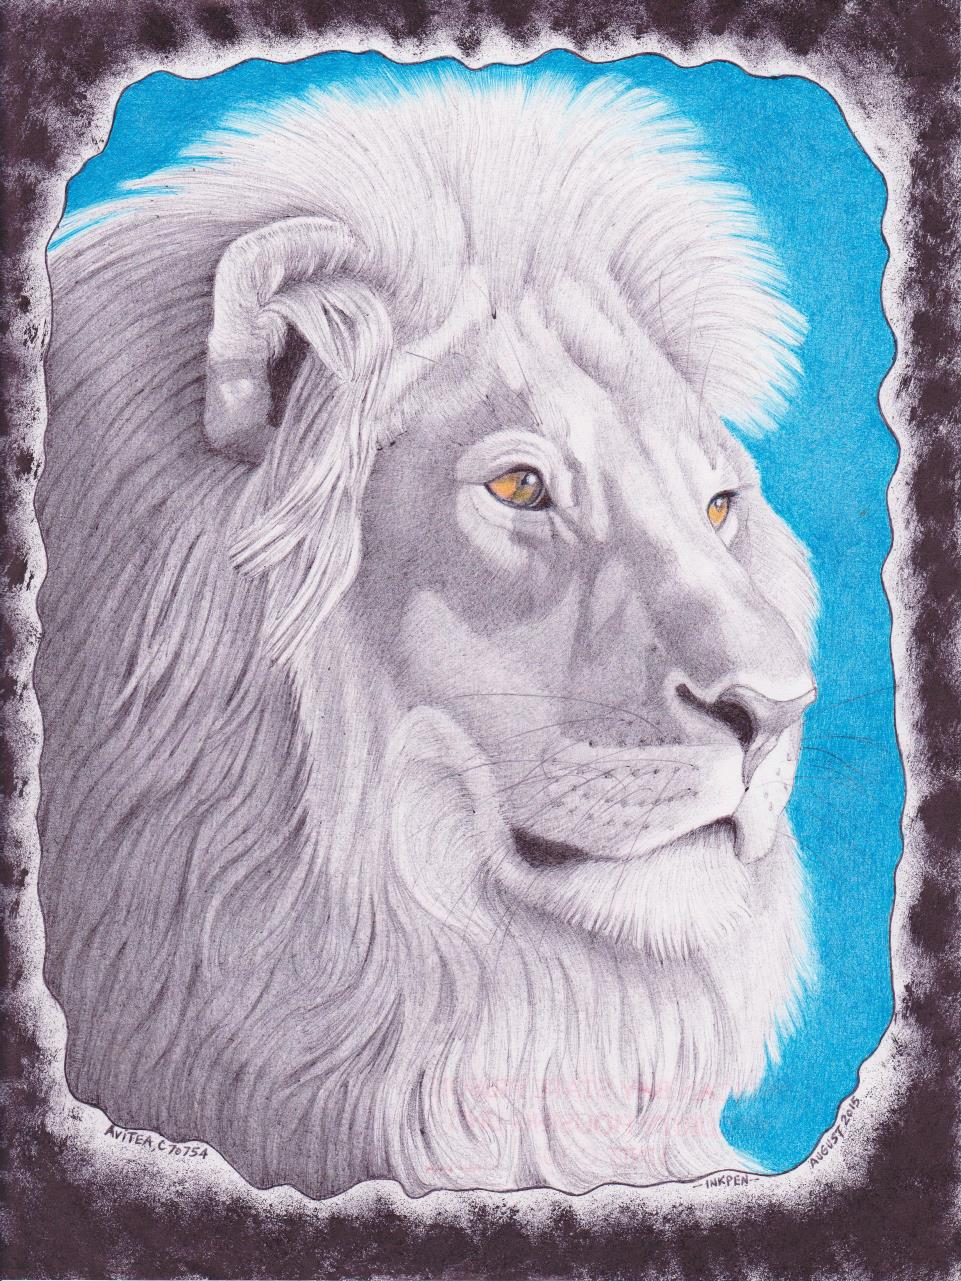 In Memory of Cecil the Lion